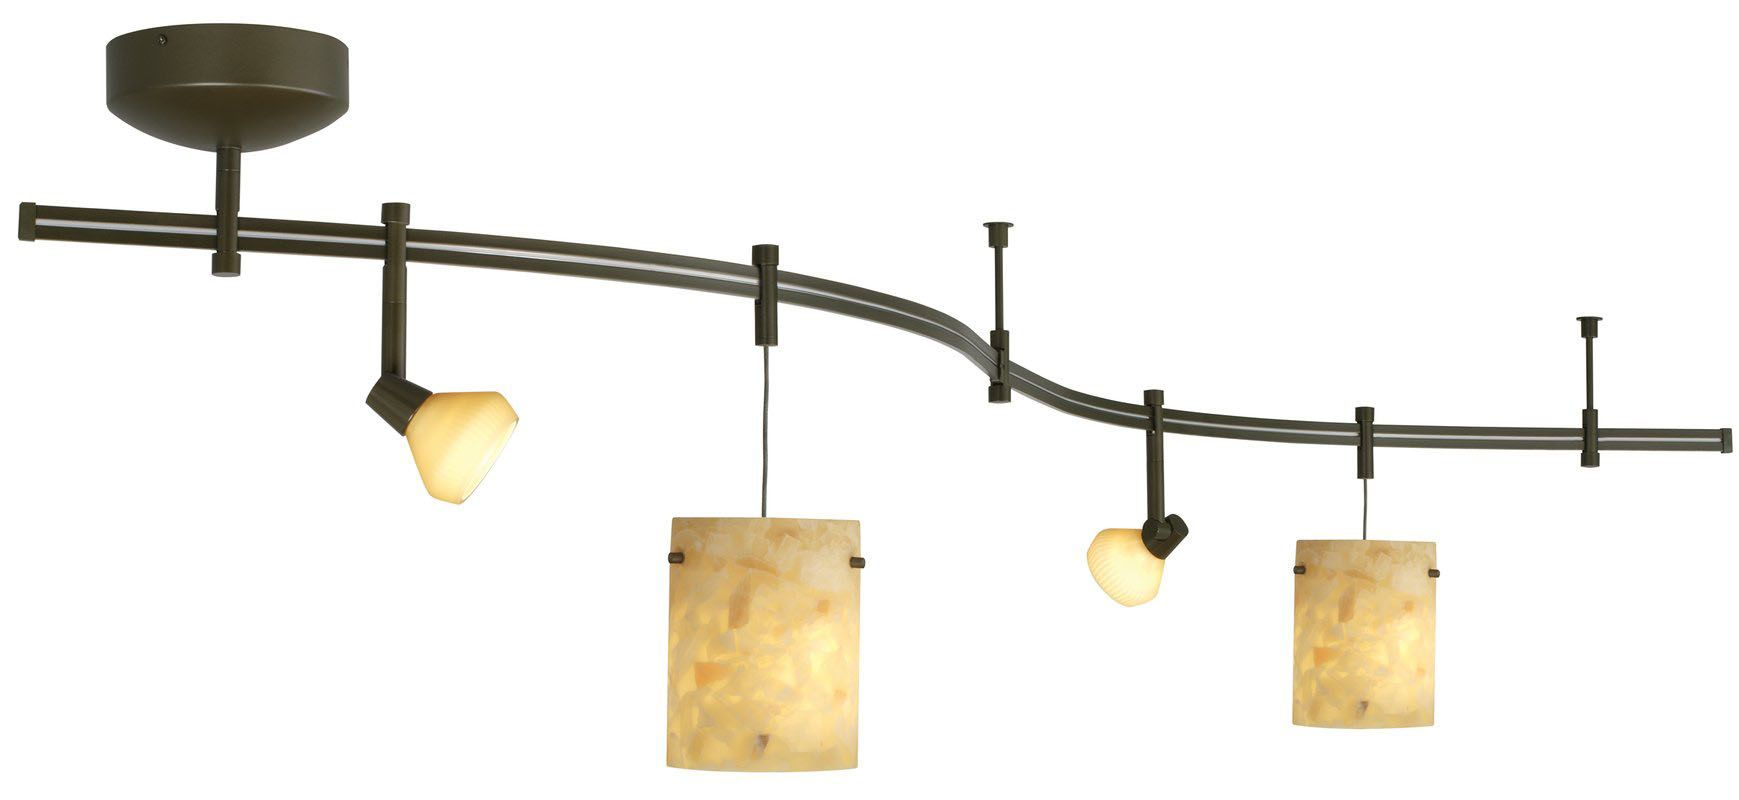 George kovacs track lighting parts elegant ideas u with for Cool track lighting fixtures